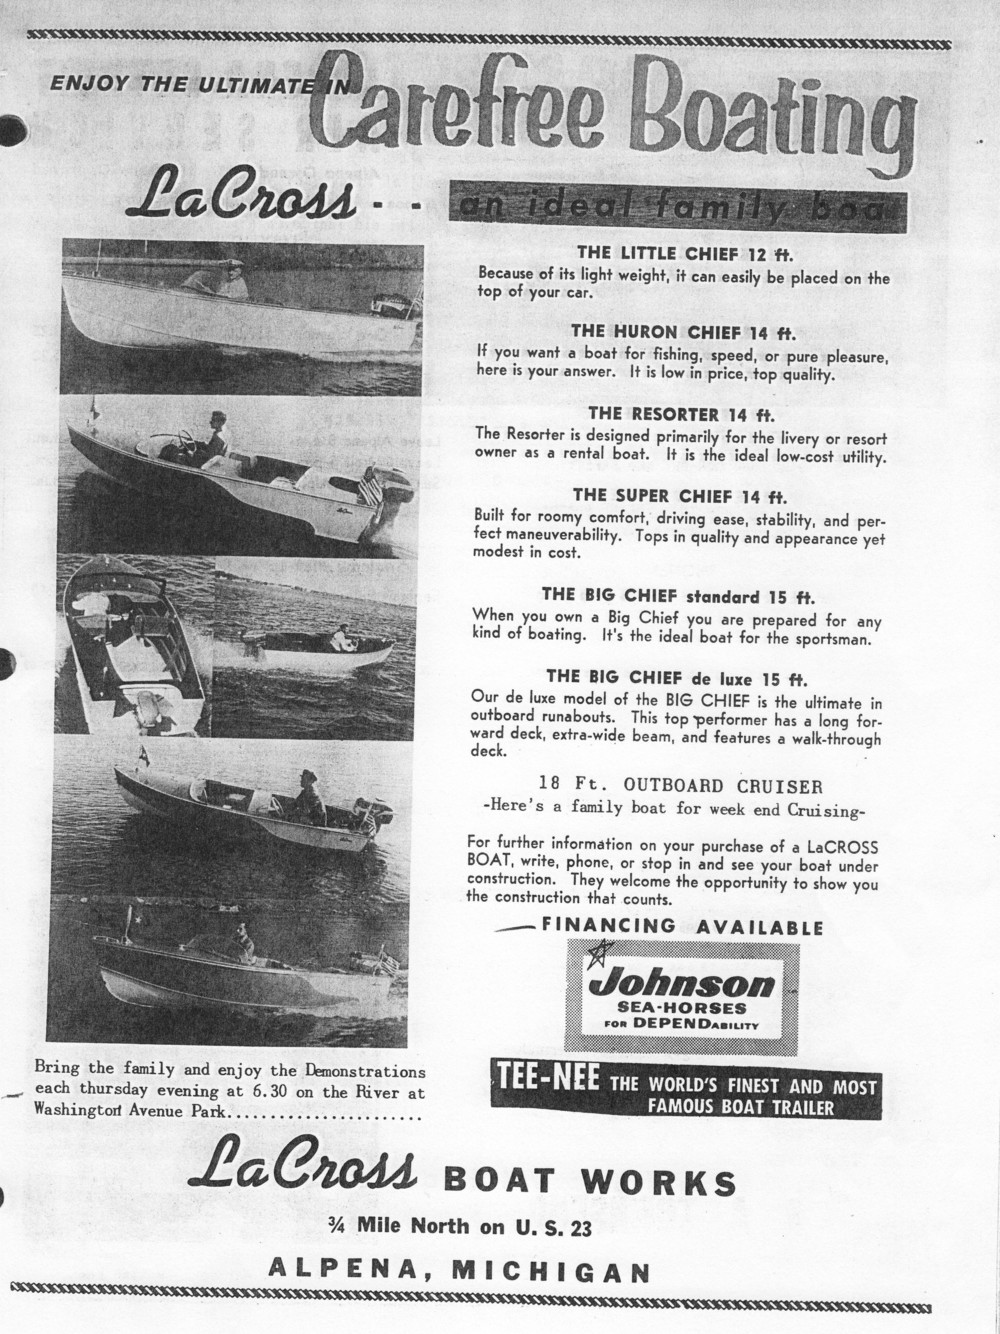 1957 LaCross Boat Works ad